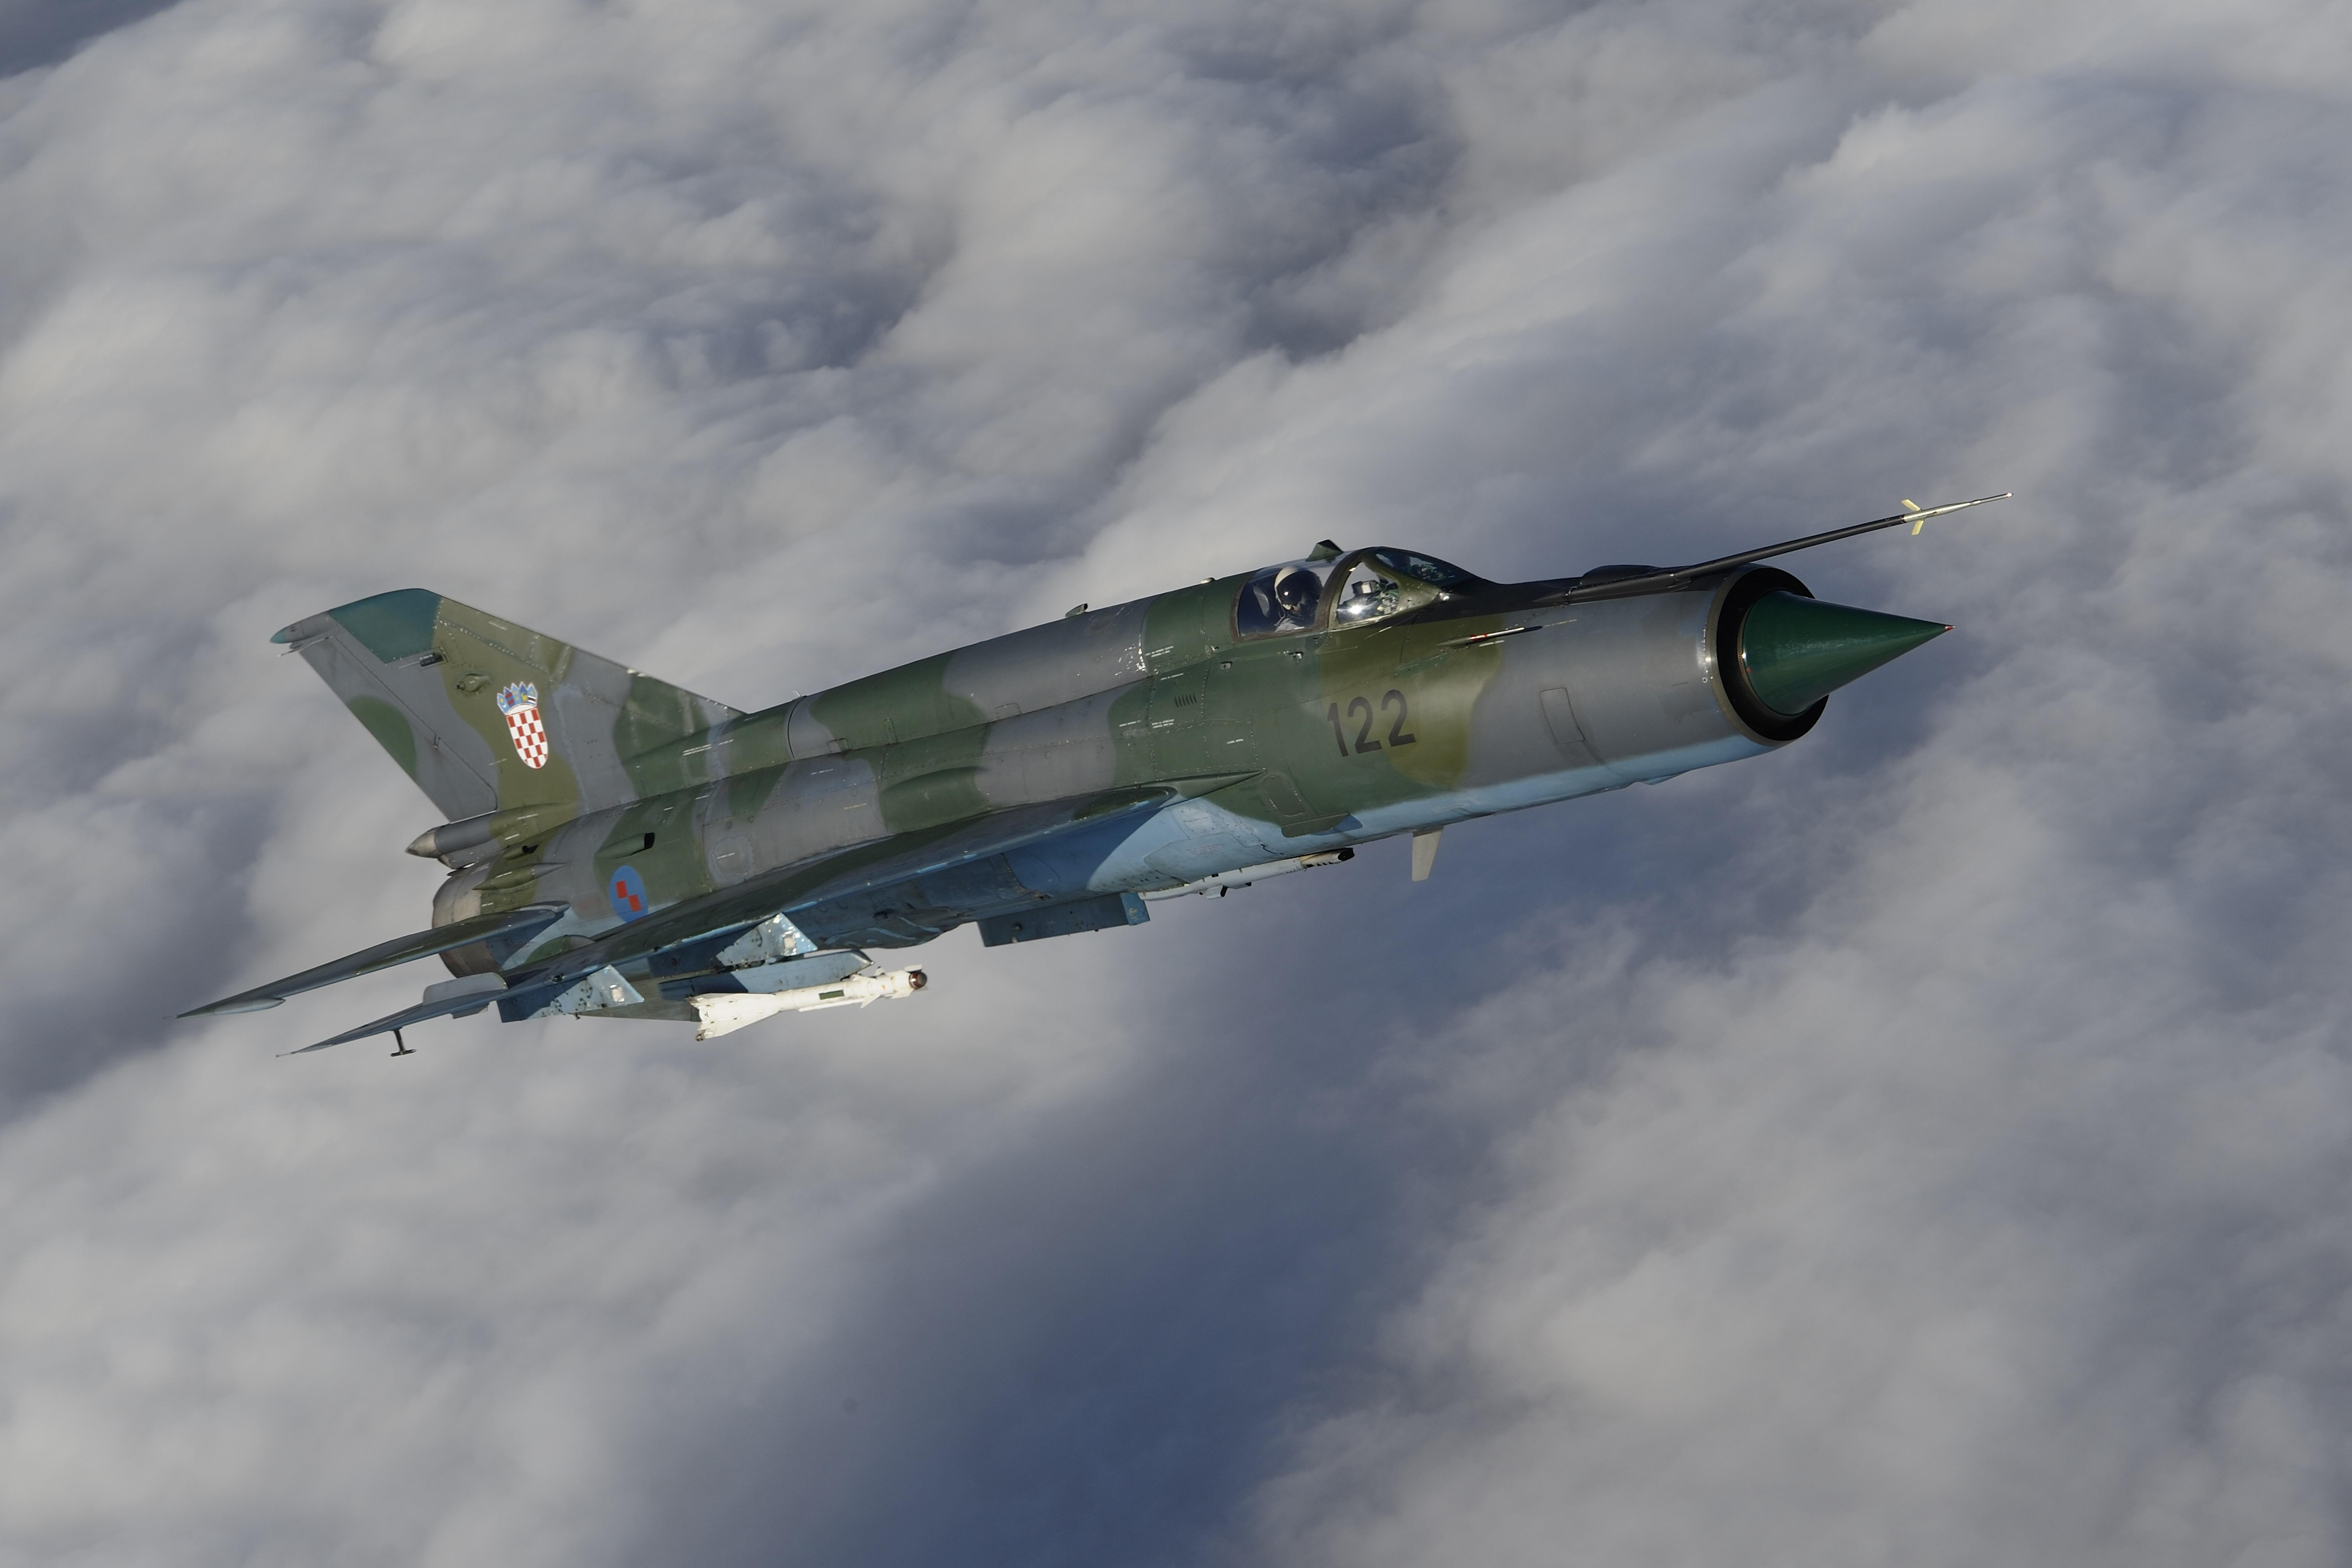 Mikoyan-Gurevich MiG-21 wallpapers HD quality